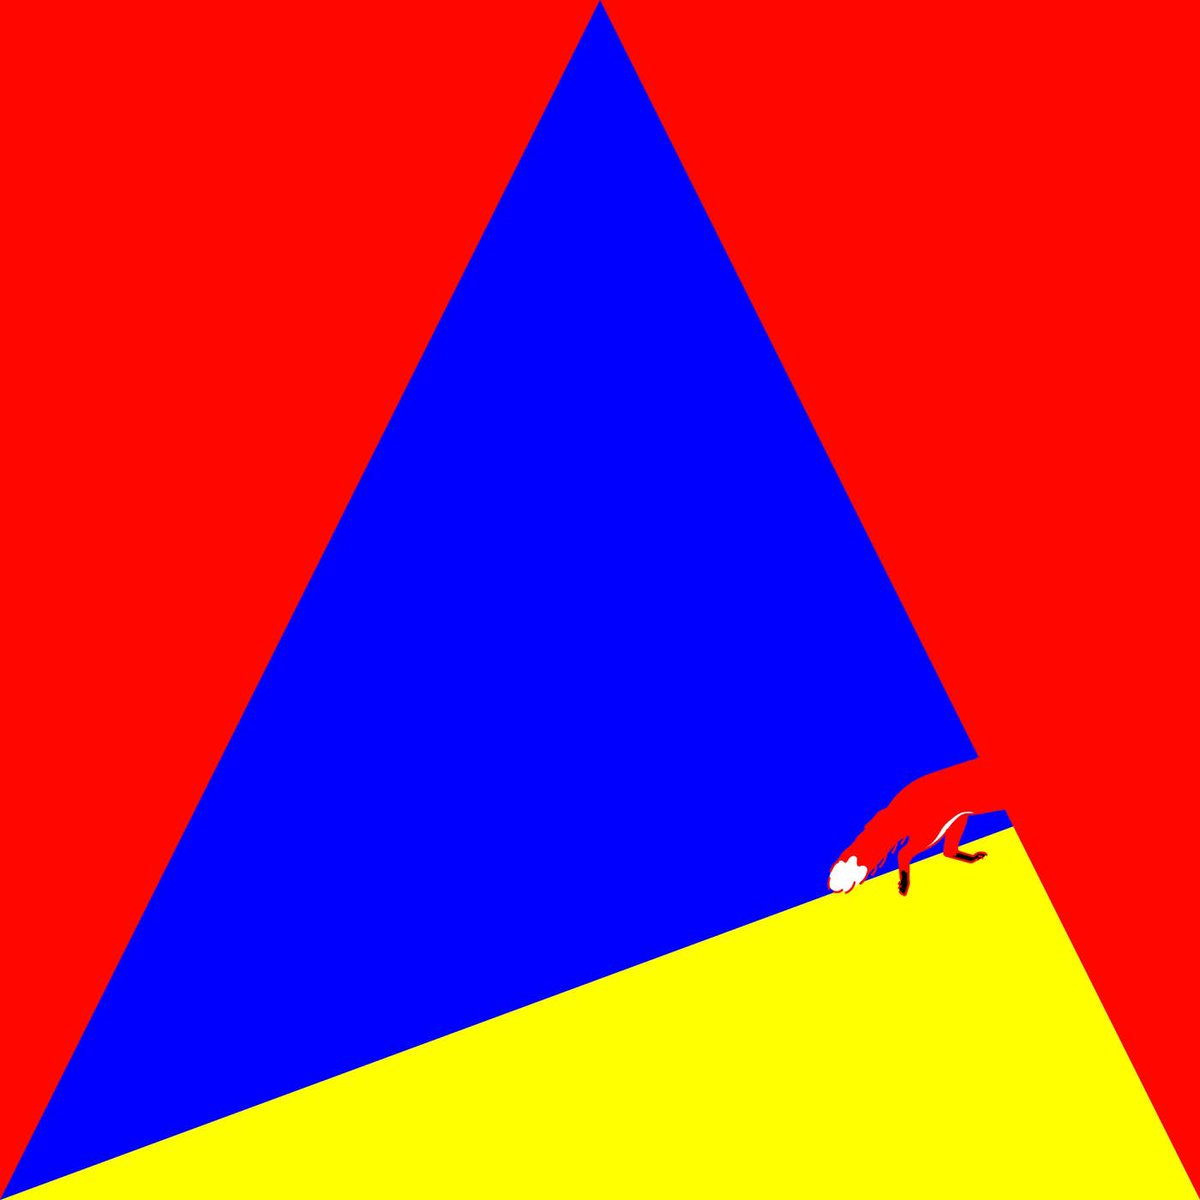 #NowPlaying Good Evening by SHINee on #AudioGate #iPhone https://t.co/XSNaGtjvaW